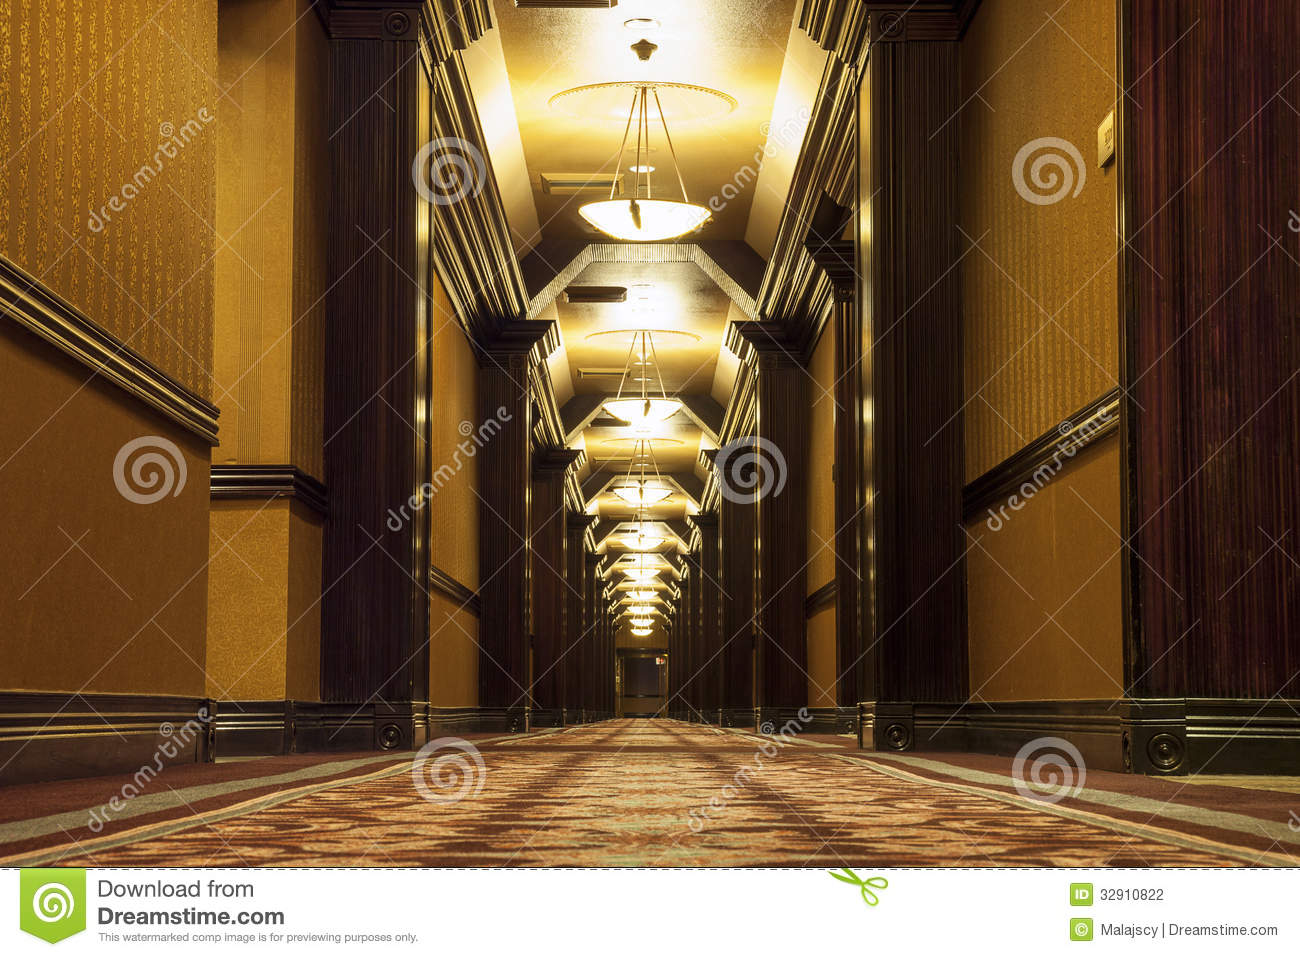 Long art deco corridor stock photo image of past entrance 32910822 - Deco corridor schilderij ...